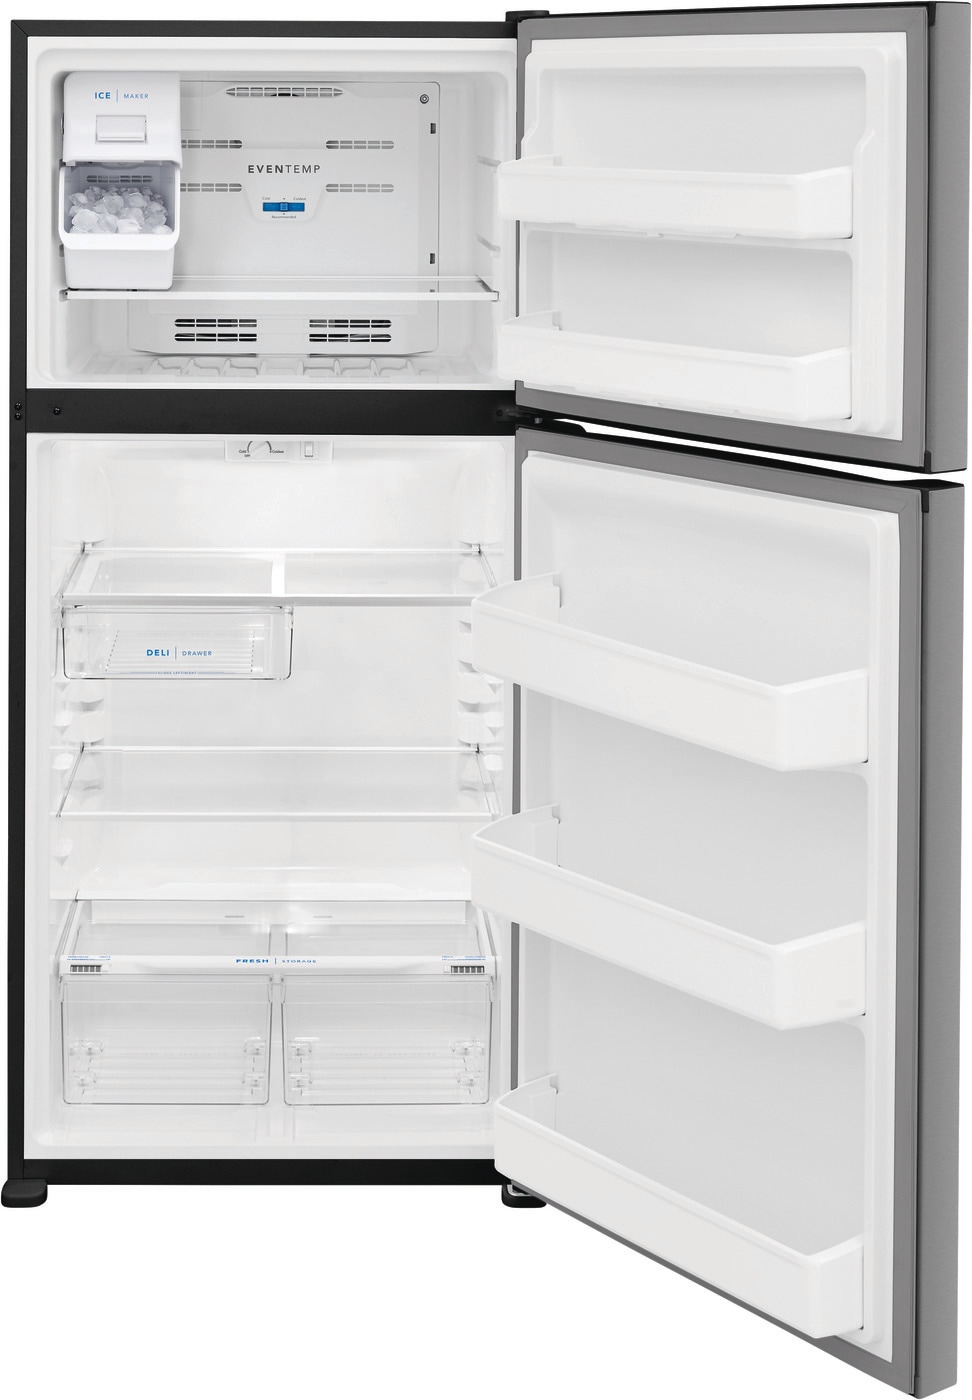 18.3 Cu. Ft. Top Freezer Refrigerator Stainless Steel FFHI1835VS